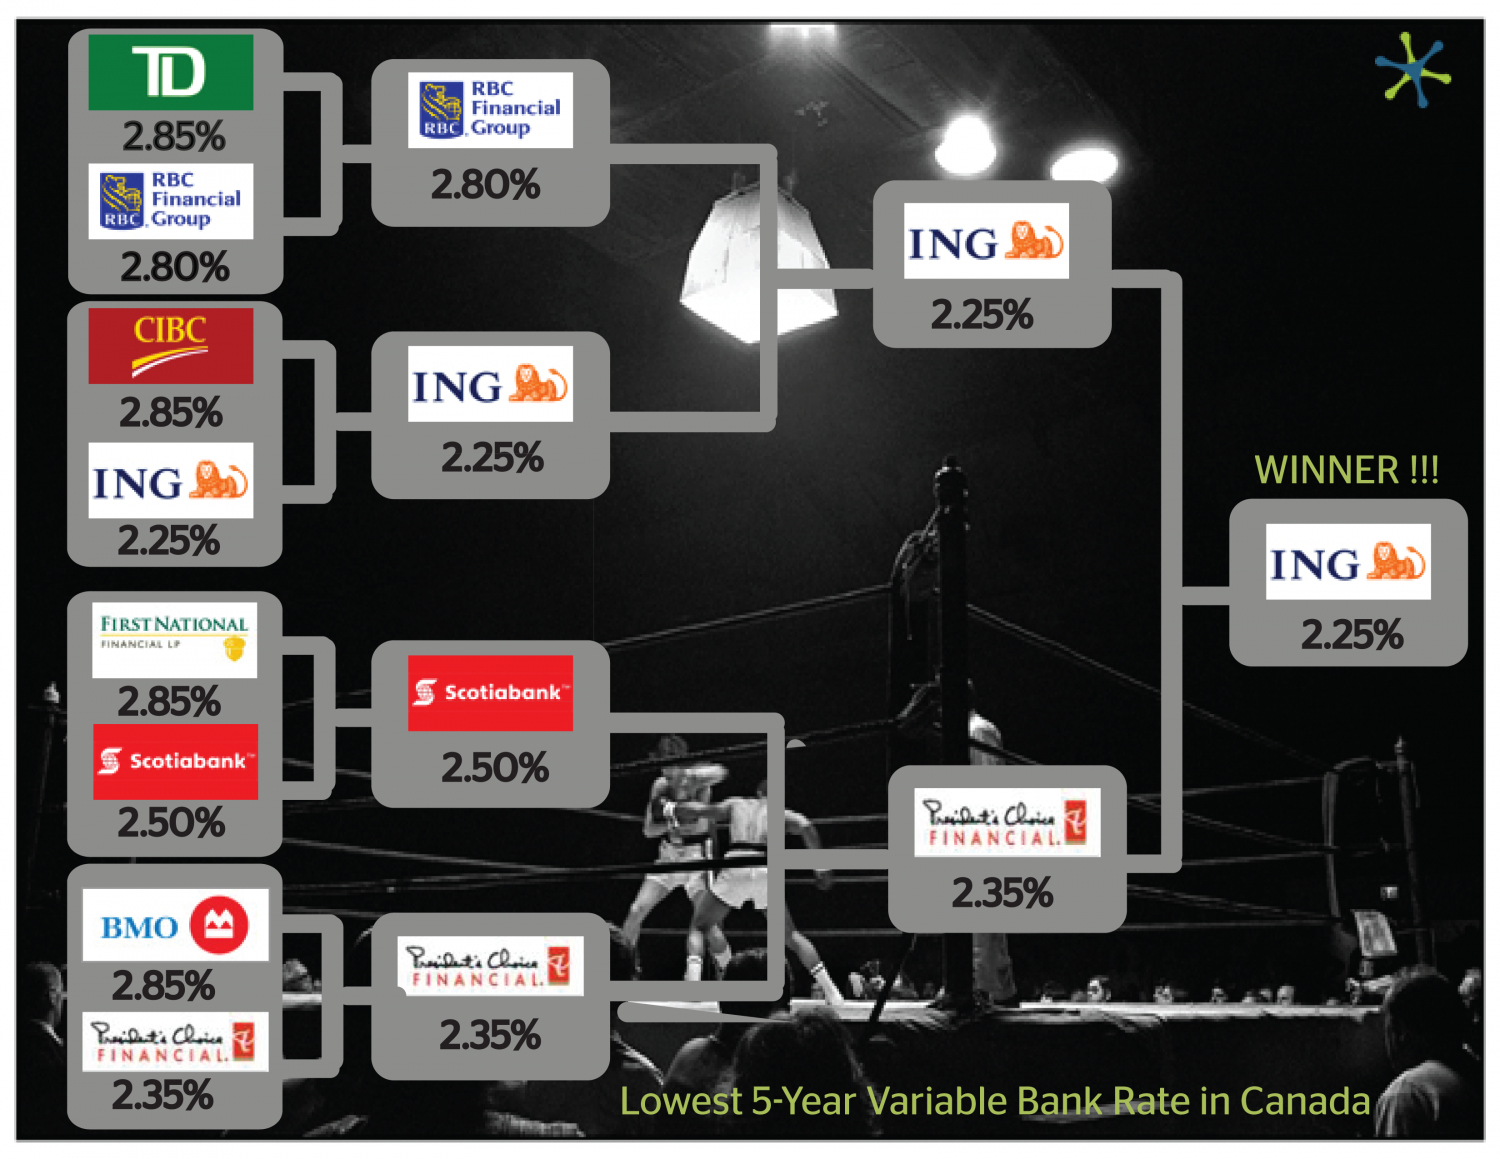 Lowest 5-Year Variable Bank Rates in Canada - June 2011 Infographic